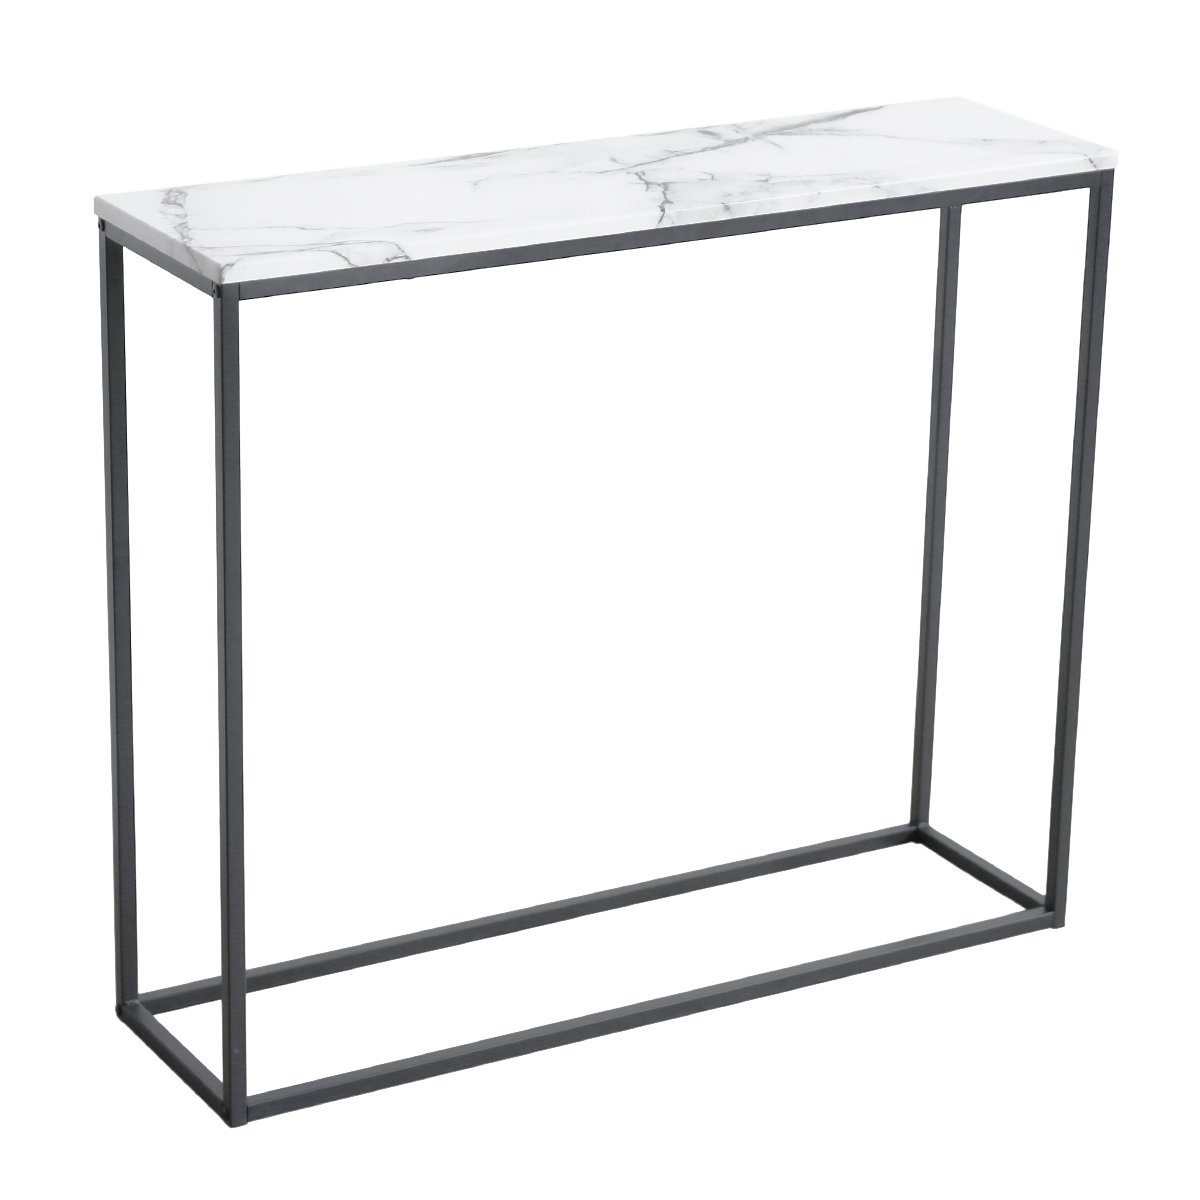 outlet store 83fec b4325 roomfitters Sofa Console Table Marble Print Top Metal Frame Accent White  Narrow Foyer Hall Table,White